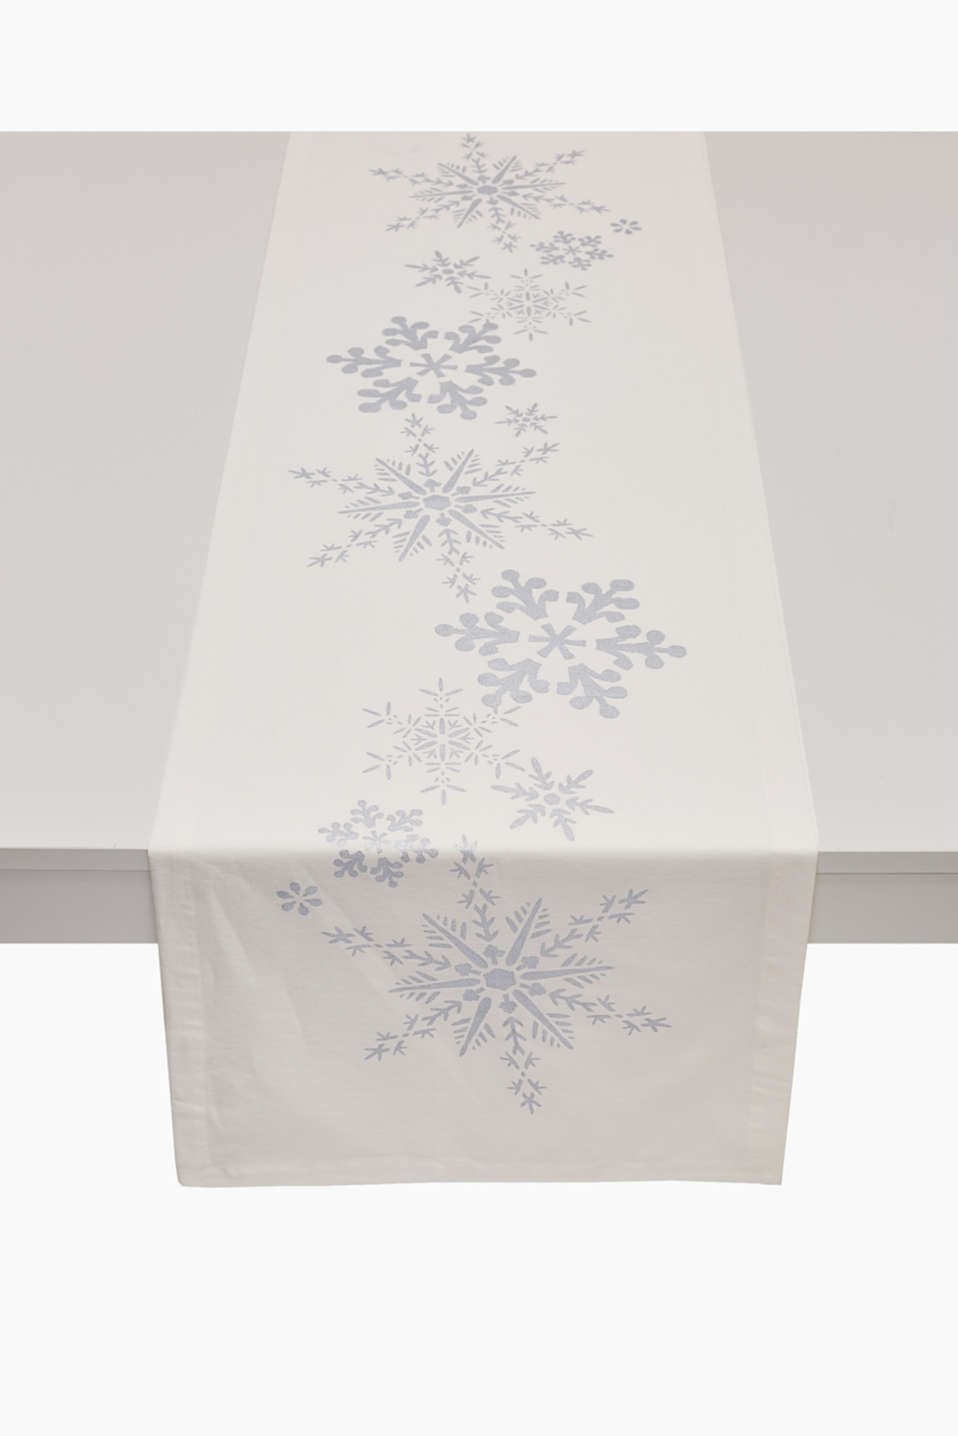 Winter wonderland! This table runner will put you in the mood for winter with its ice crystals in a metallic finish.